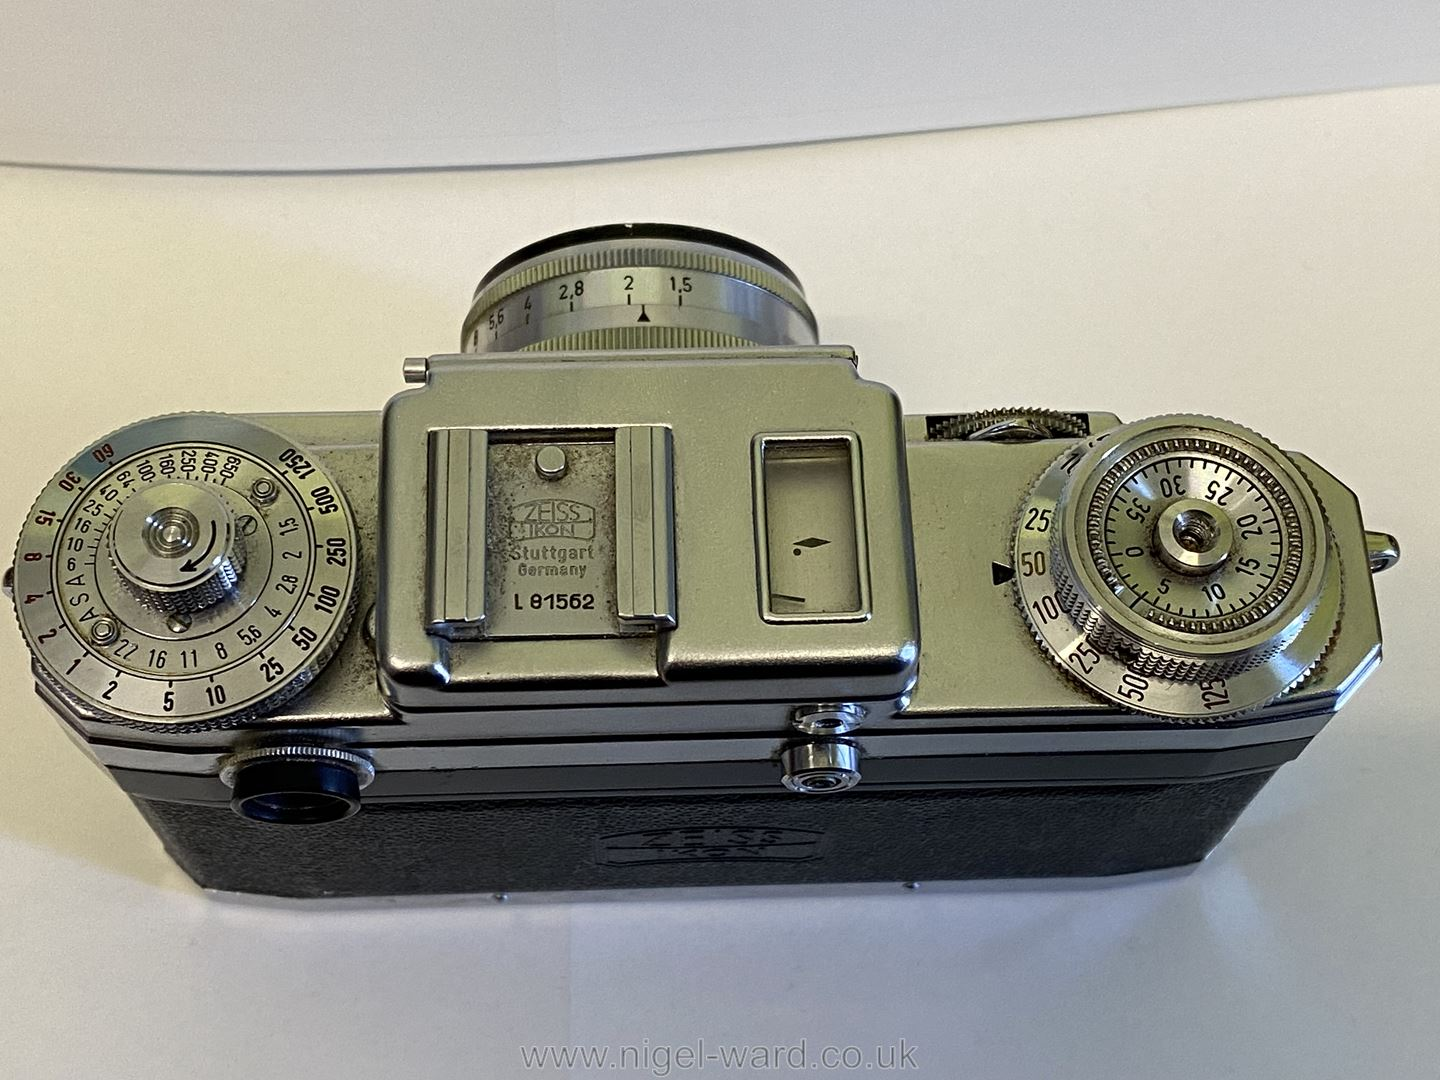 A Circa 1950's - 60's Zeiss Ikon Stuttgart Contax IIIa 35mm Range Finder Camera with a Carl Zeiss - Image 6 of 18